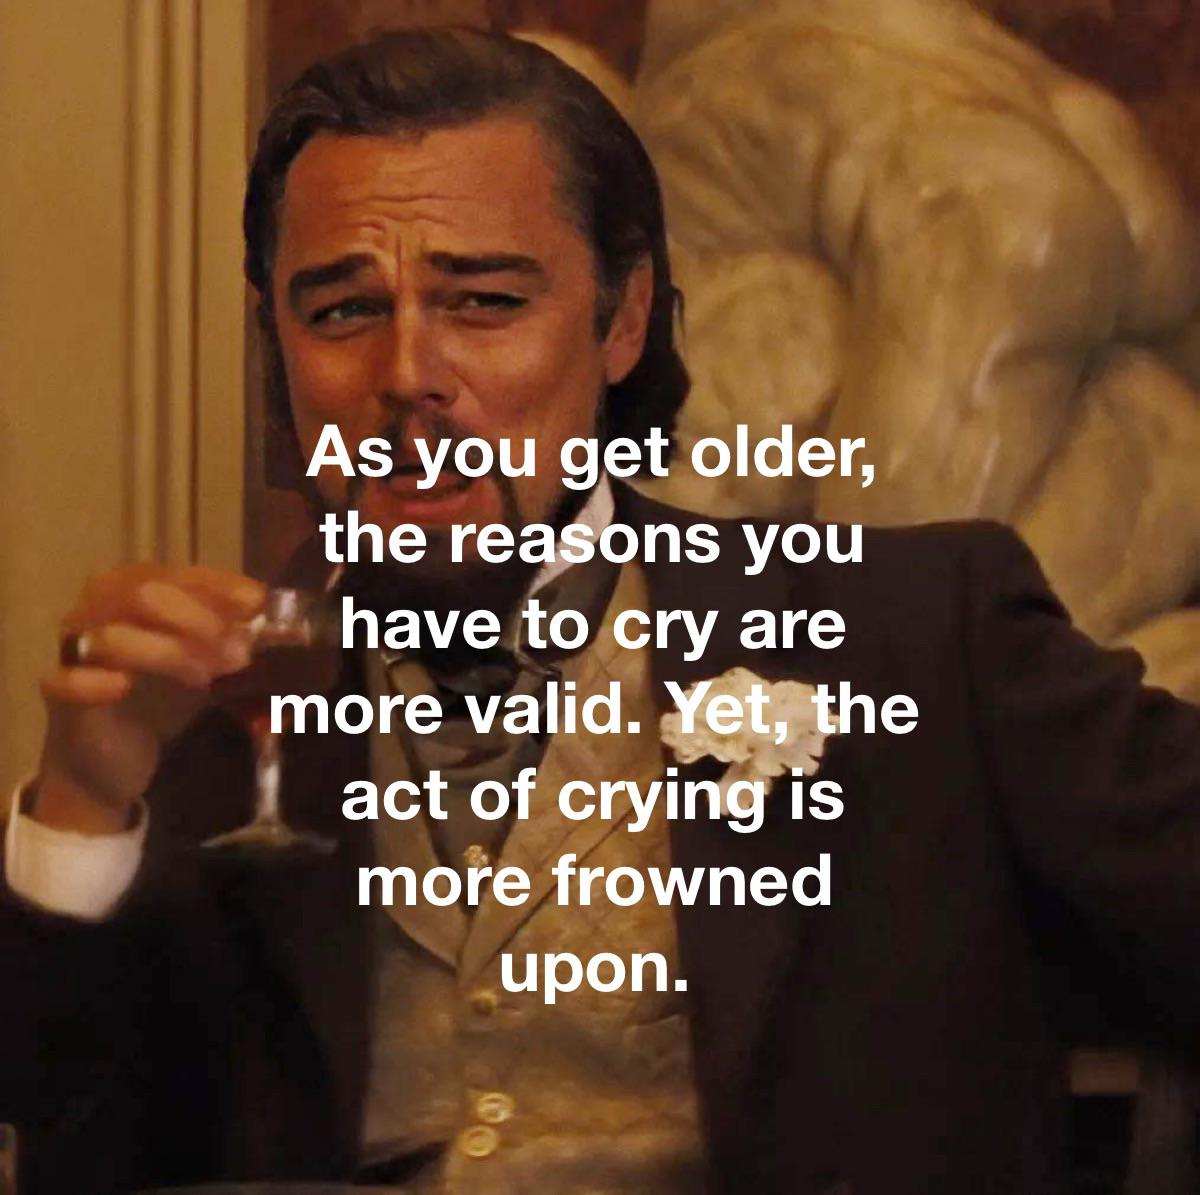 As you get older, the reafi'ons you ' have to cry are more valid. We ' act of cryirig IS more frowned upon. https://inspirational.ly